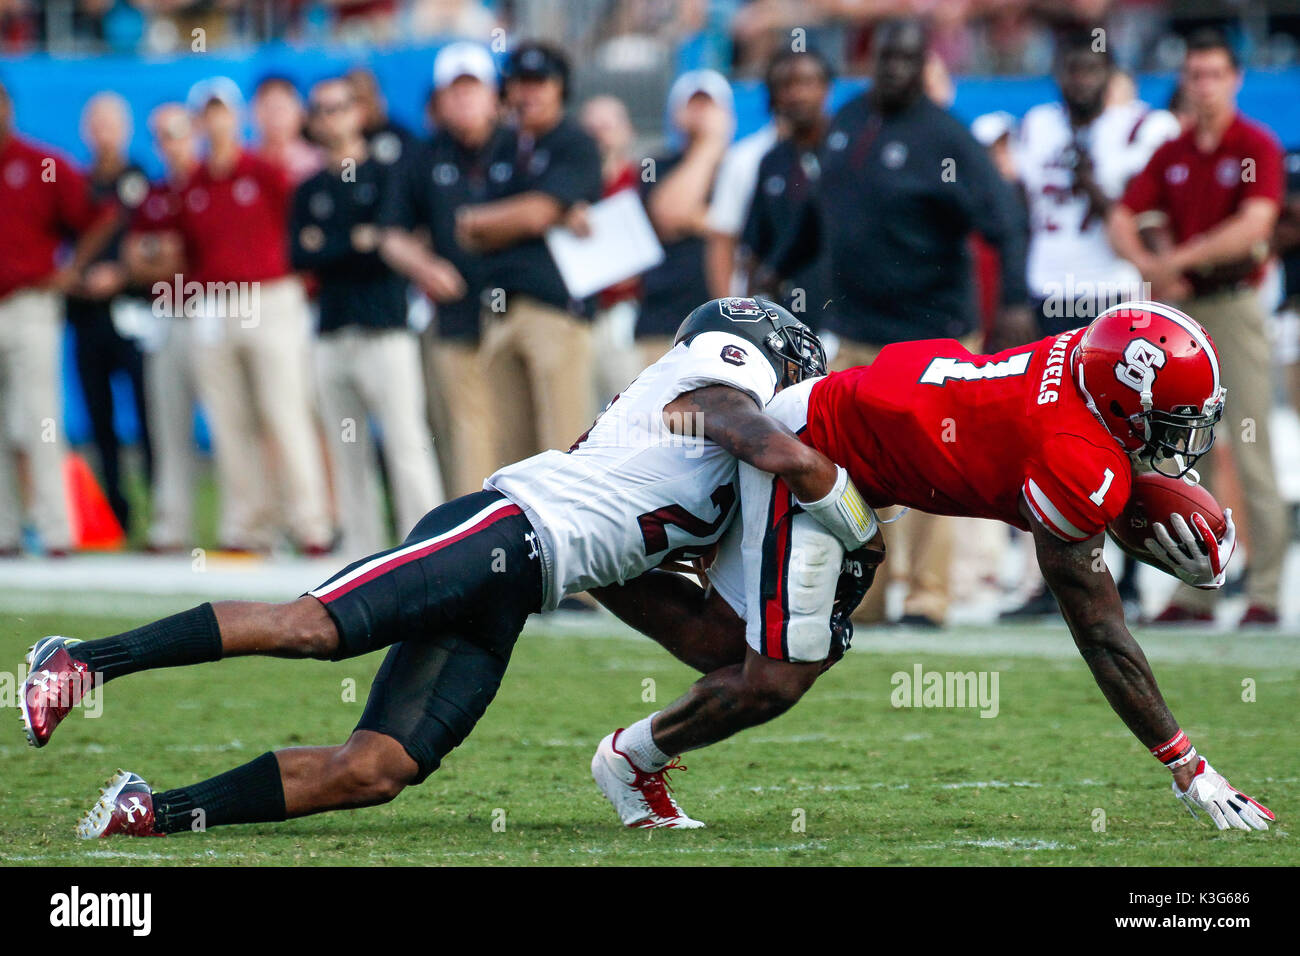 Charlotte, NC, USA. 2nd Sep, 2017. D.J. Smith (24) of the South Carolina Gamecocks wraps up Jaylen Samuels (1) of the NC State Wolfpack as he reaches for the first down but comes up short in the NCAA football matchup between the NC State Wolfpack and the South Carolina Gamecocks at Bank of America Stadium in Charlotte, NC. (Scott Kinser/Cal Sport Media) Credit: csm/Alamy Live News - Stock Image